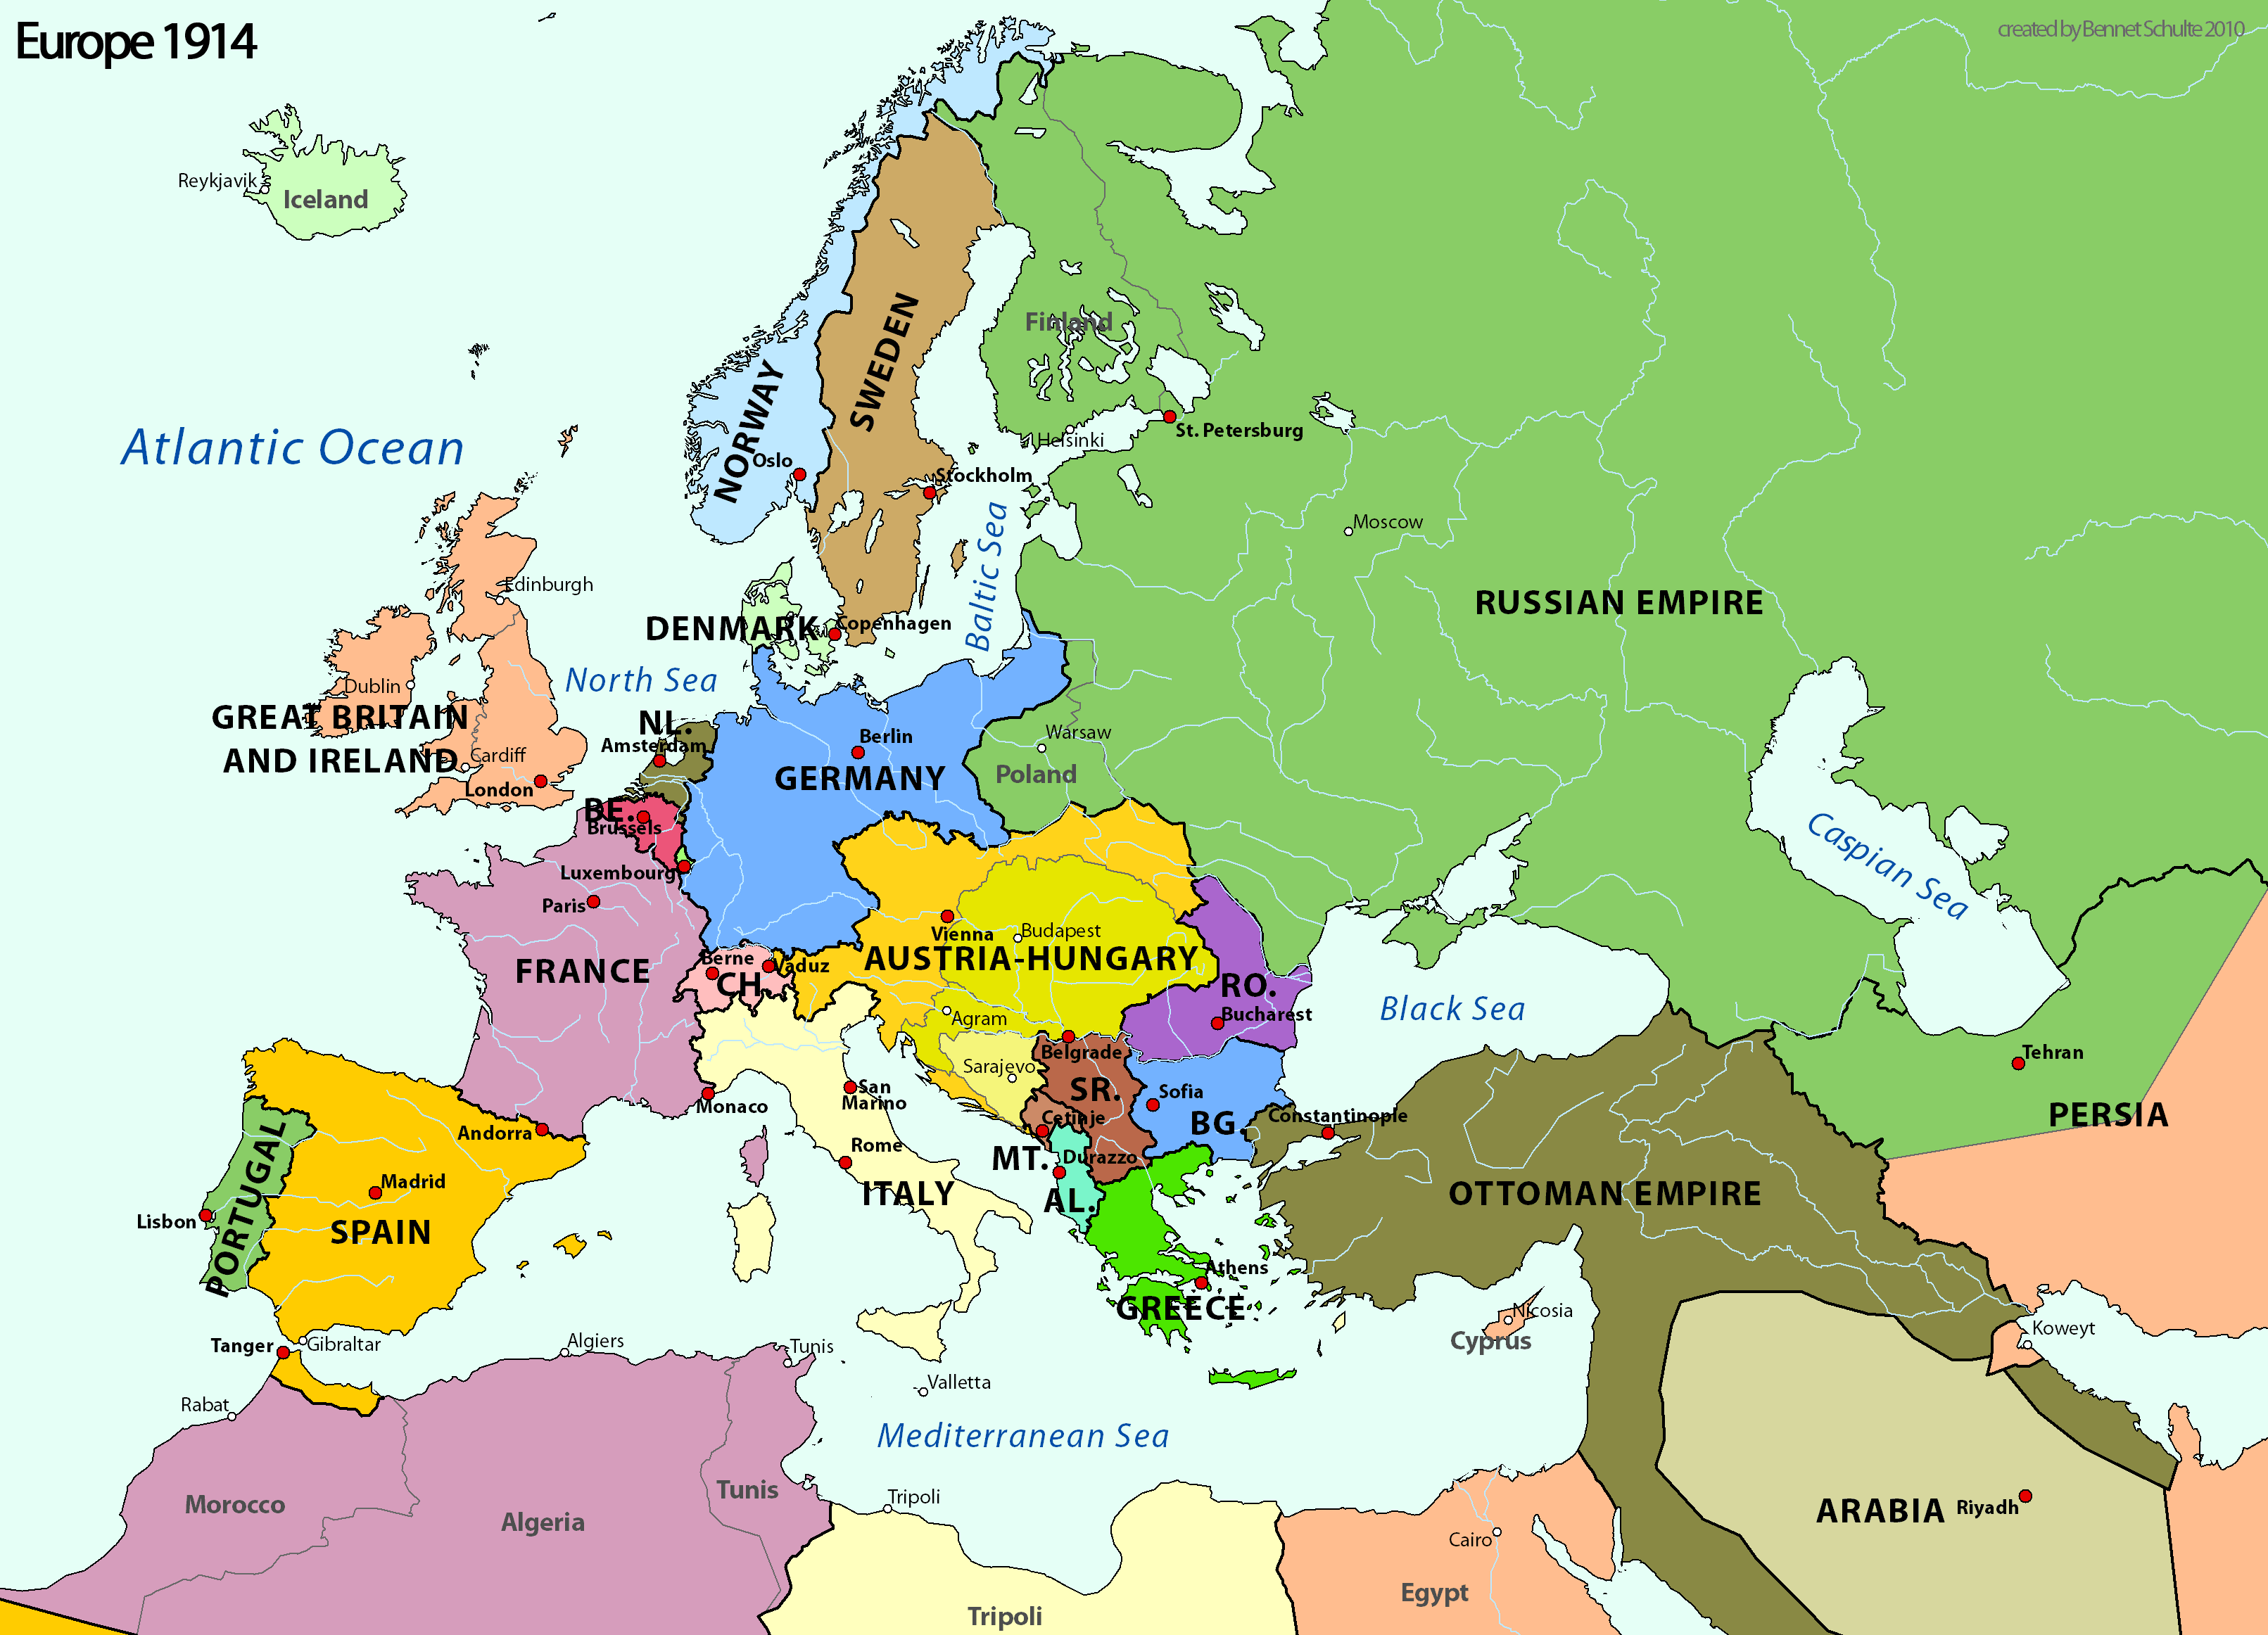 europe 1914 world war 1 map Quotes